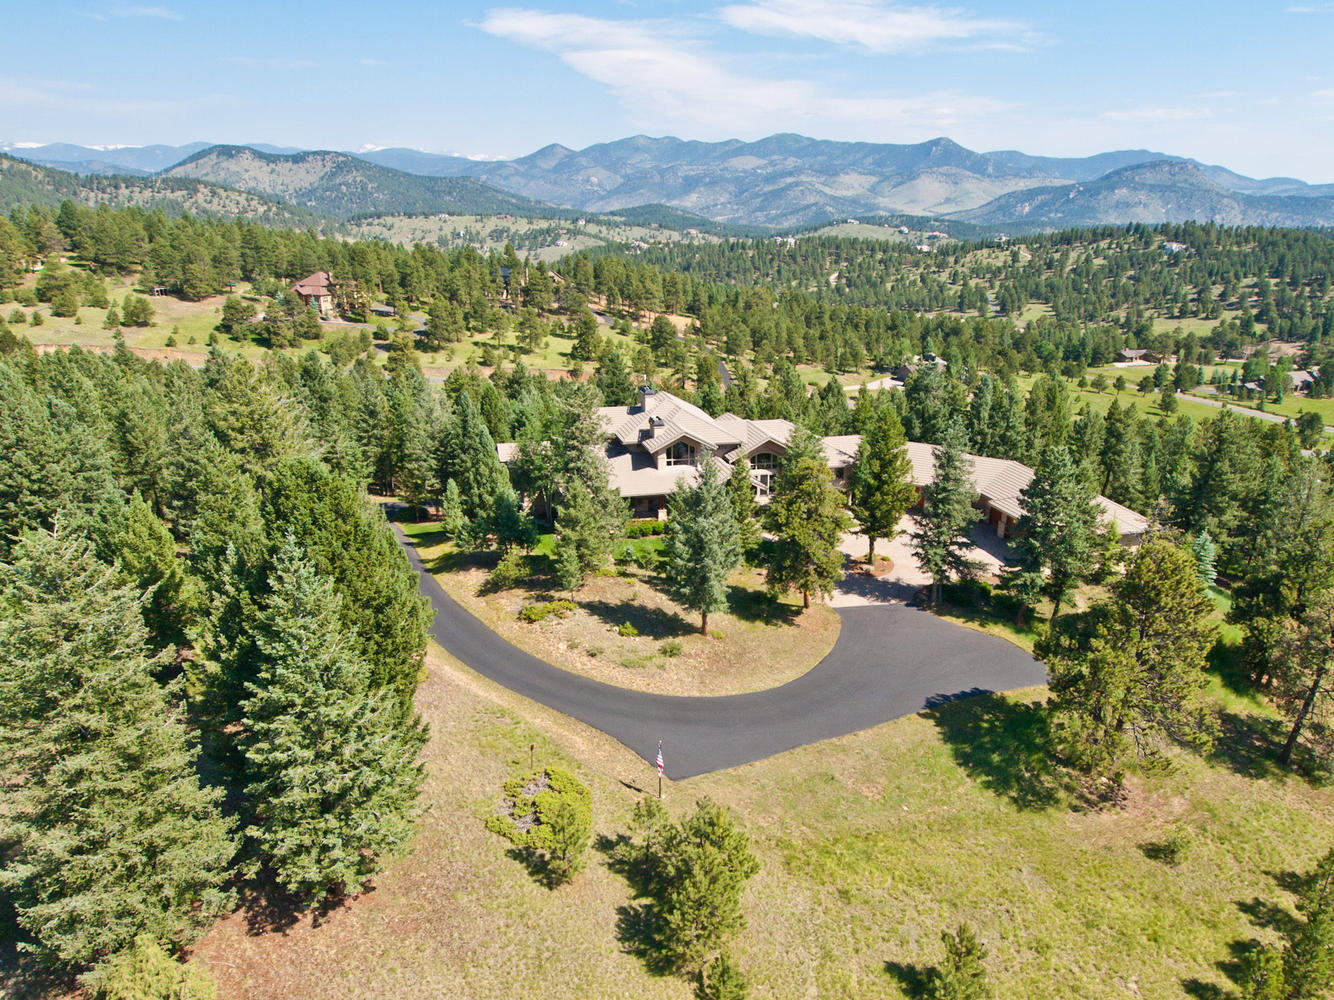 Casa Unifamiliar por un Venta en One of Evergreen's Best Locations 32534 Meadow Mountain Lane Evergreen, Colorado, 80439 Estados Unidos